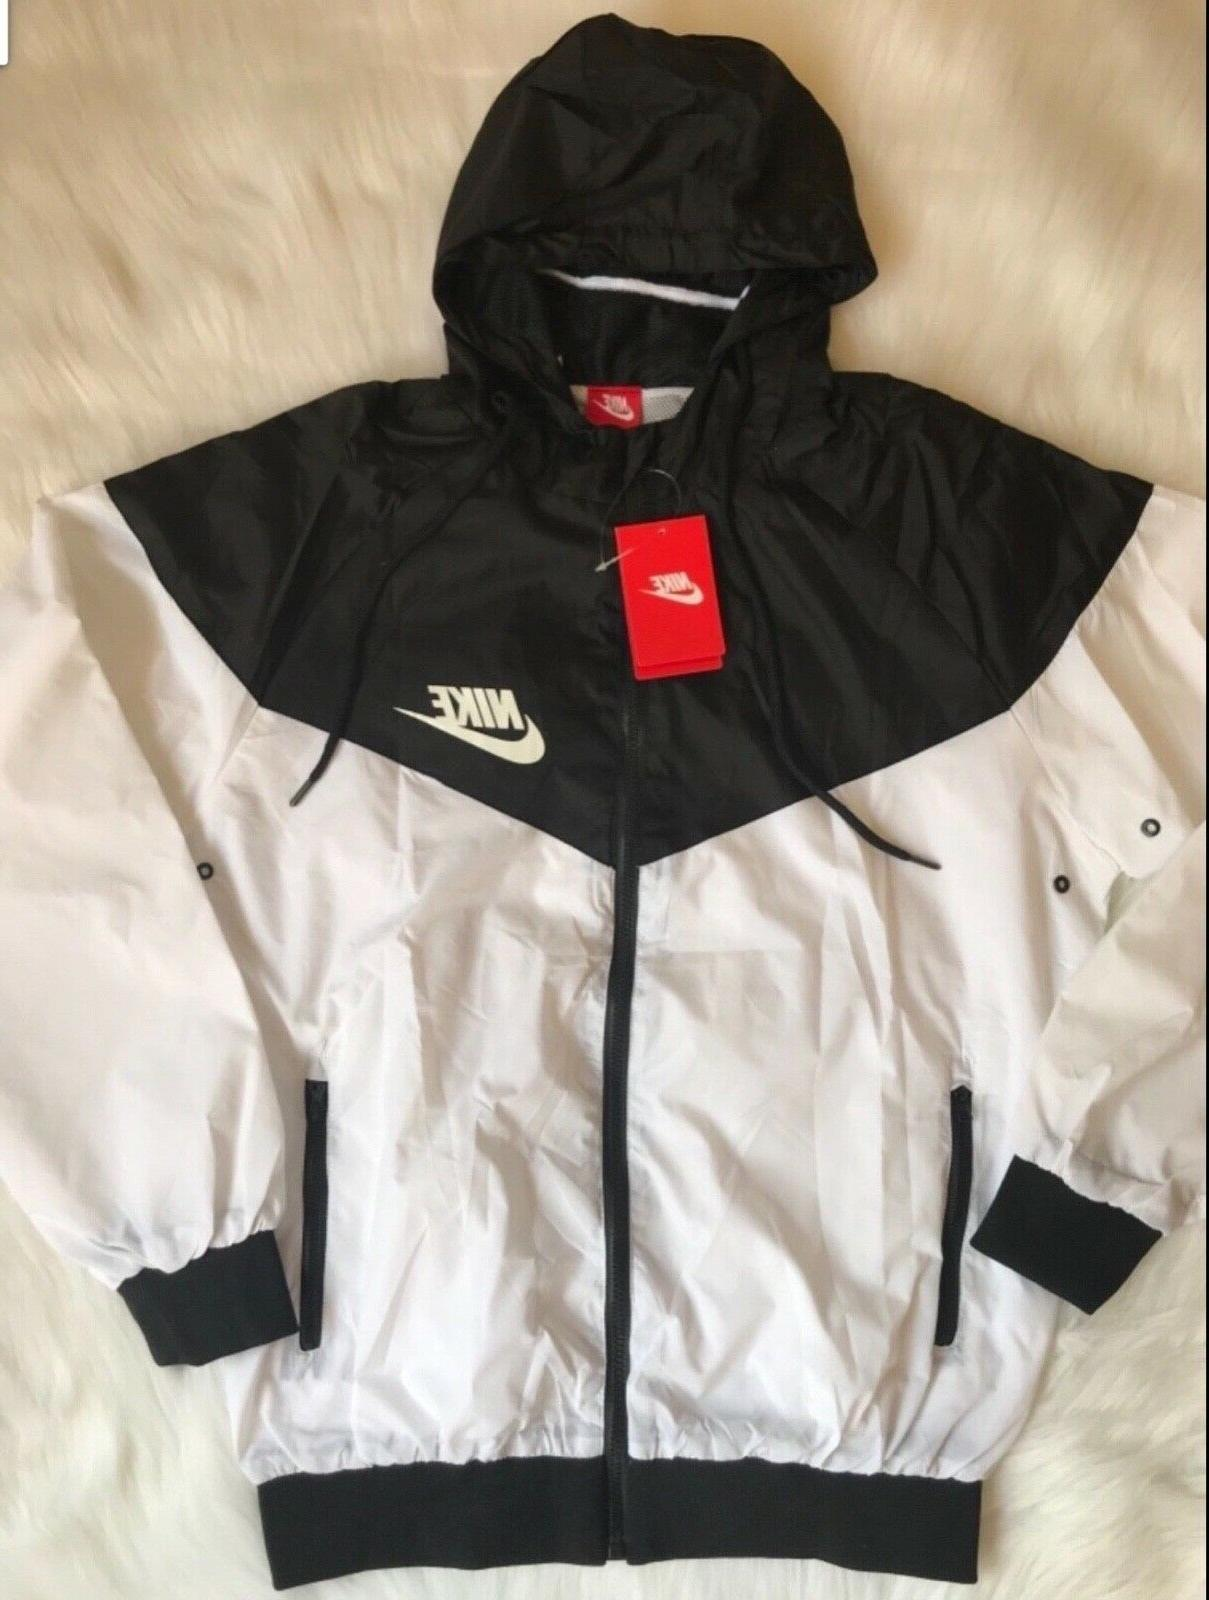 SLIM MEN'S/WOMEN'S Full Jacket